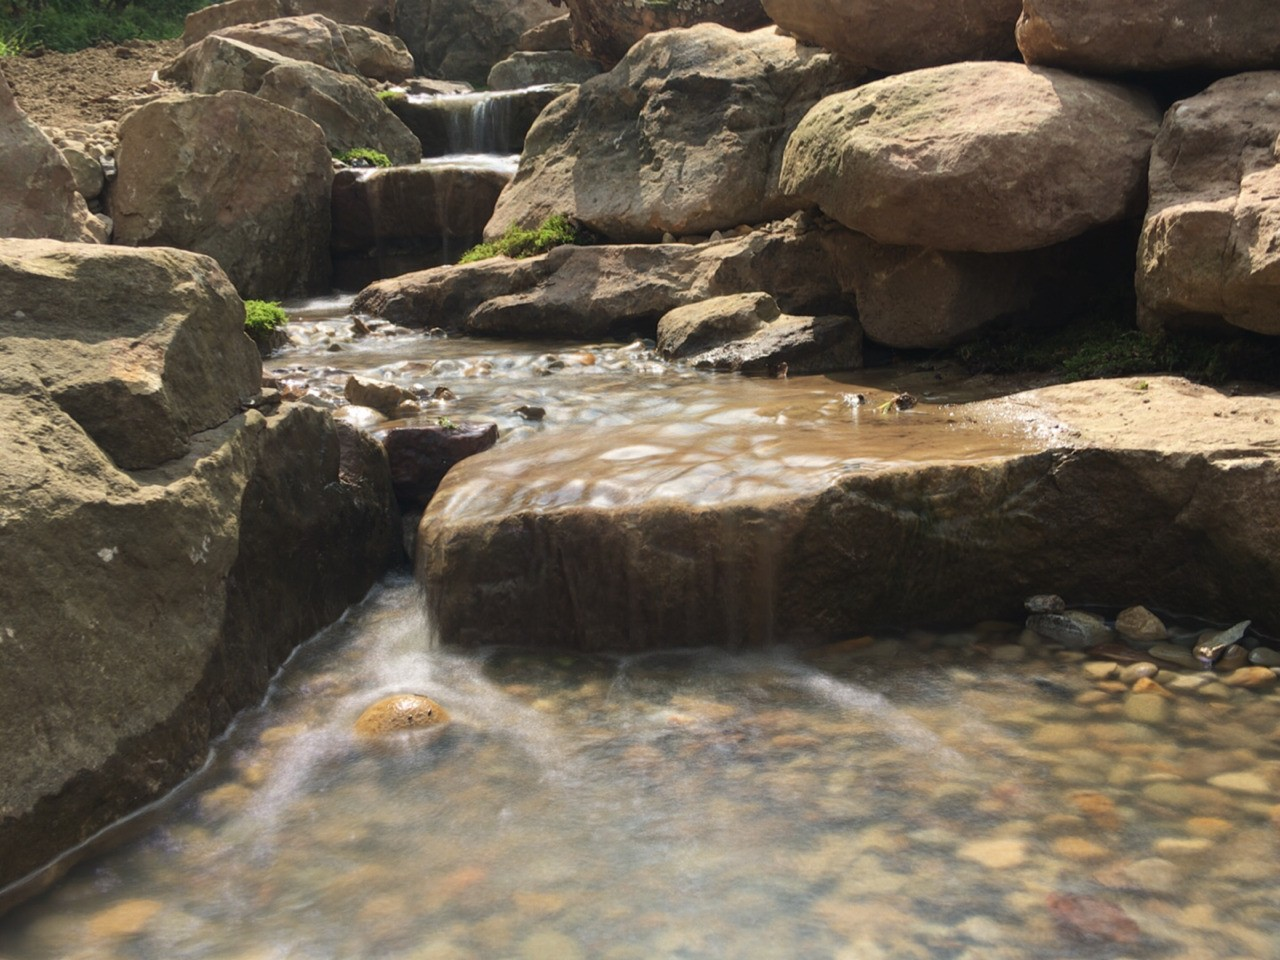 Part of a 50' Pondless Waterfall in Western Pennsylvania, designed and installed by Aquatic Edge.